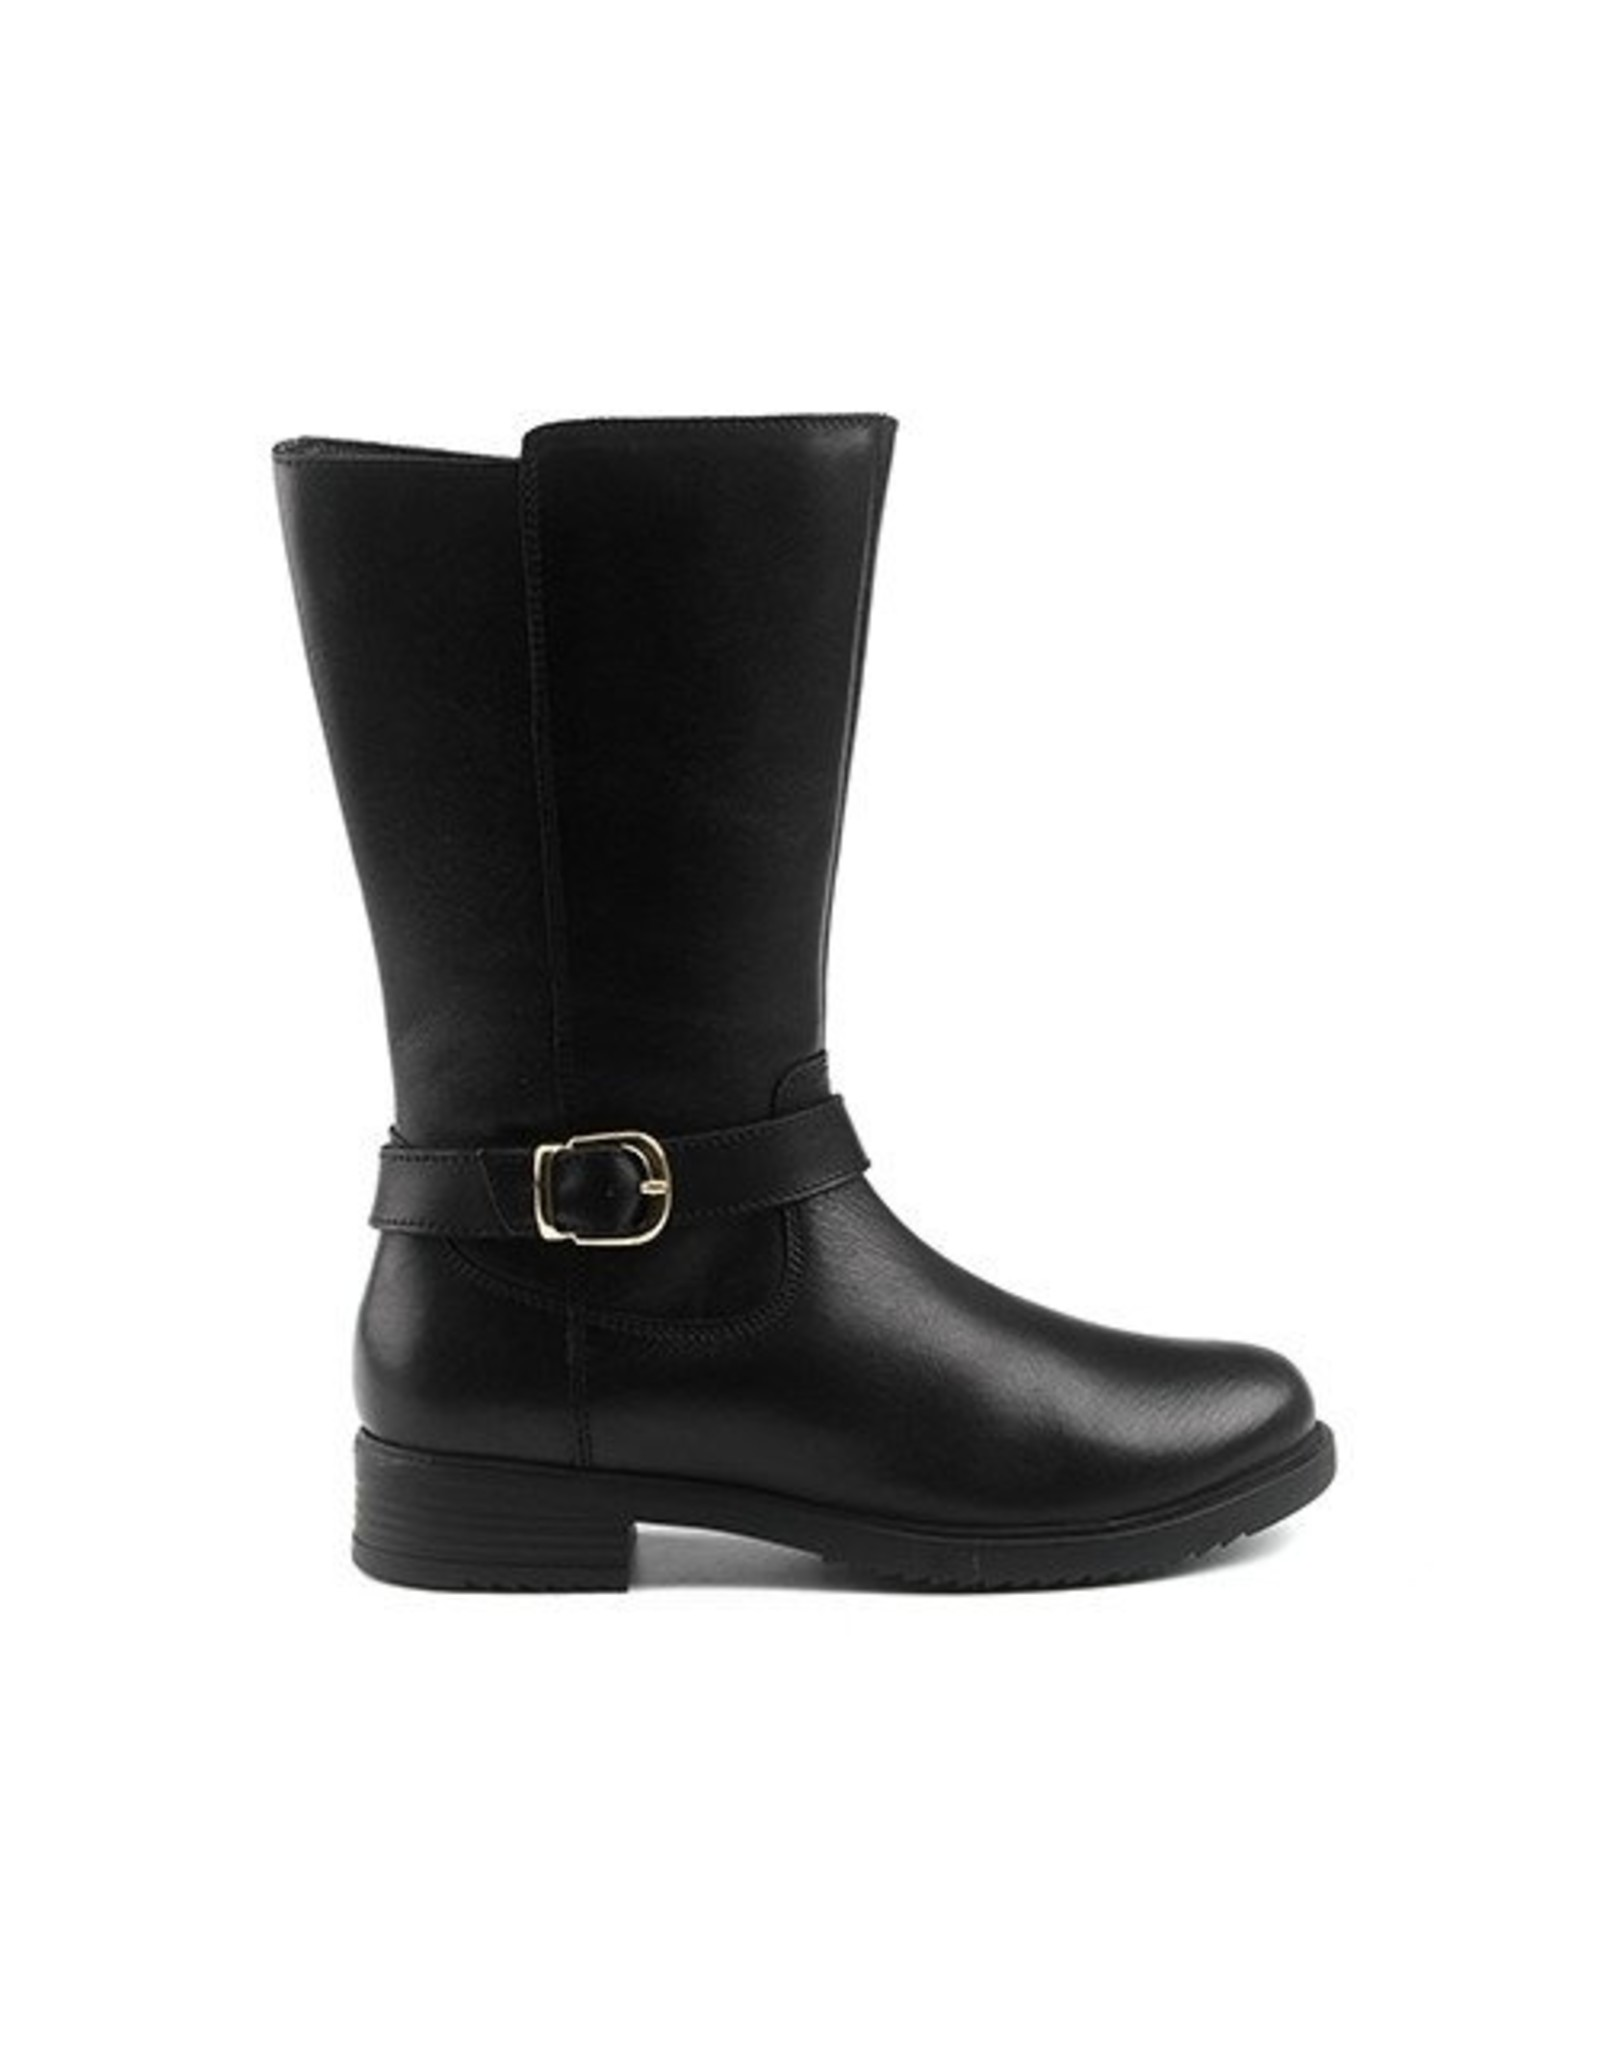 Olang Lilybellule FA21 Dalina Leather Boots